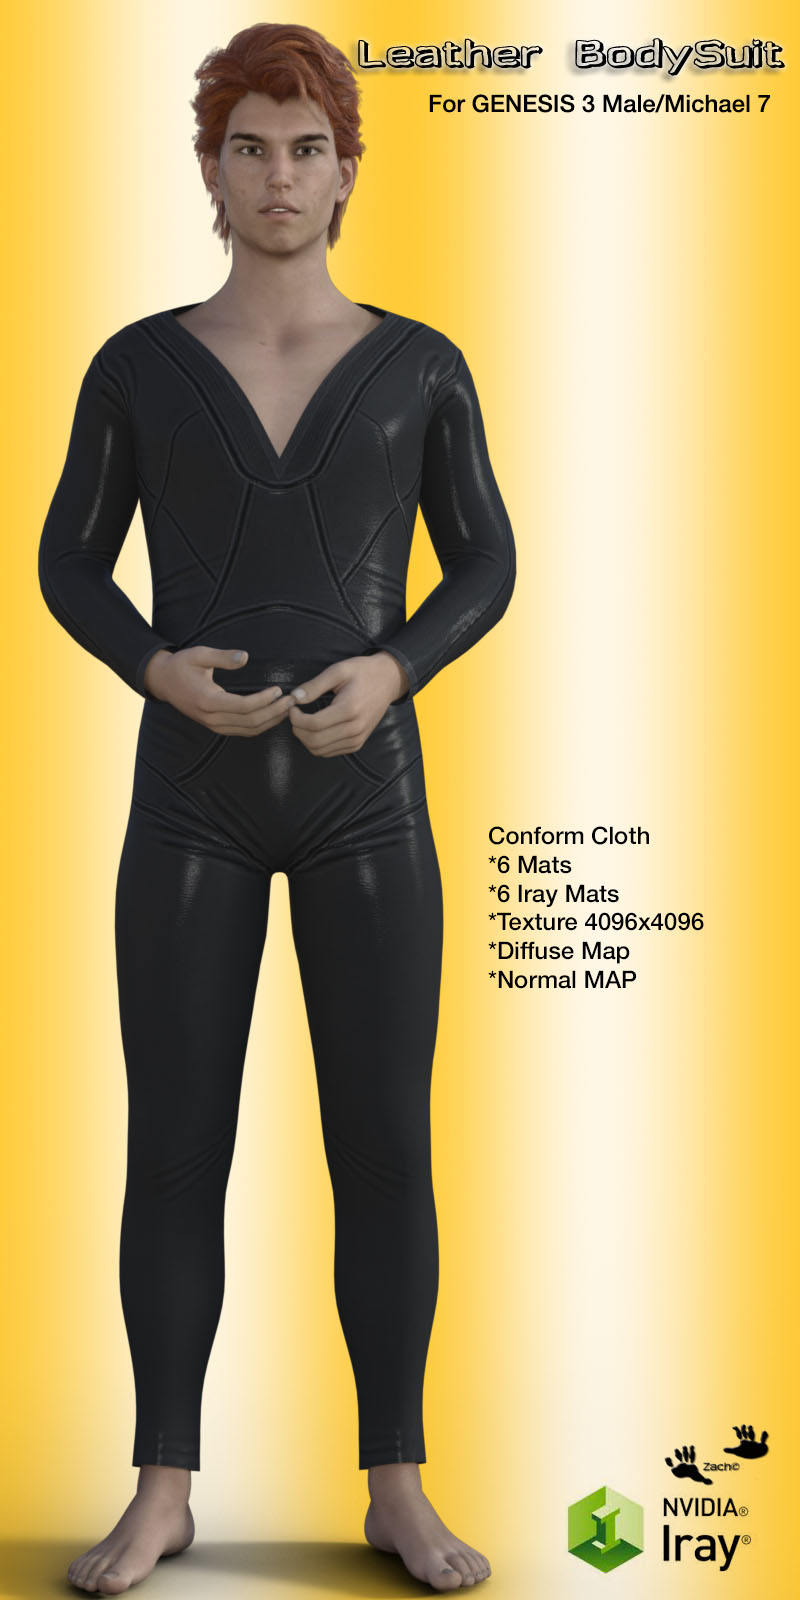 Leather BodySuit for G3M / Michael 7